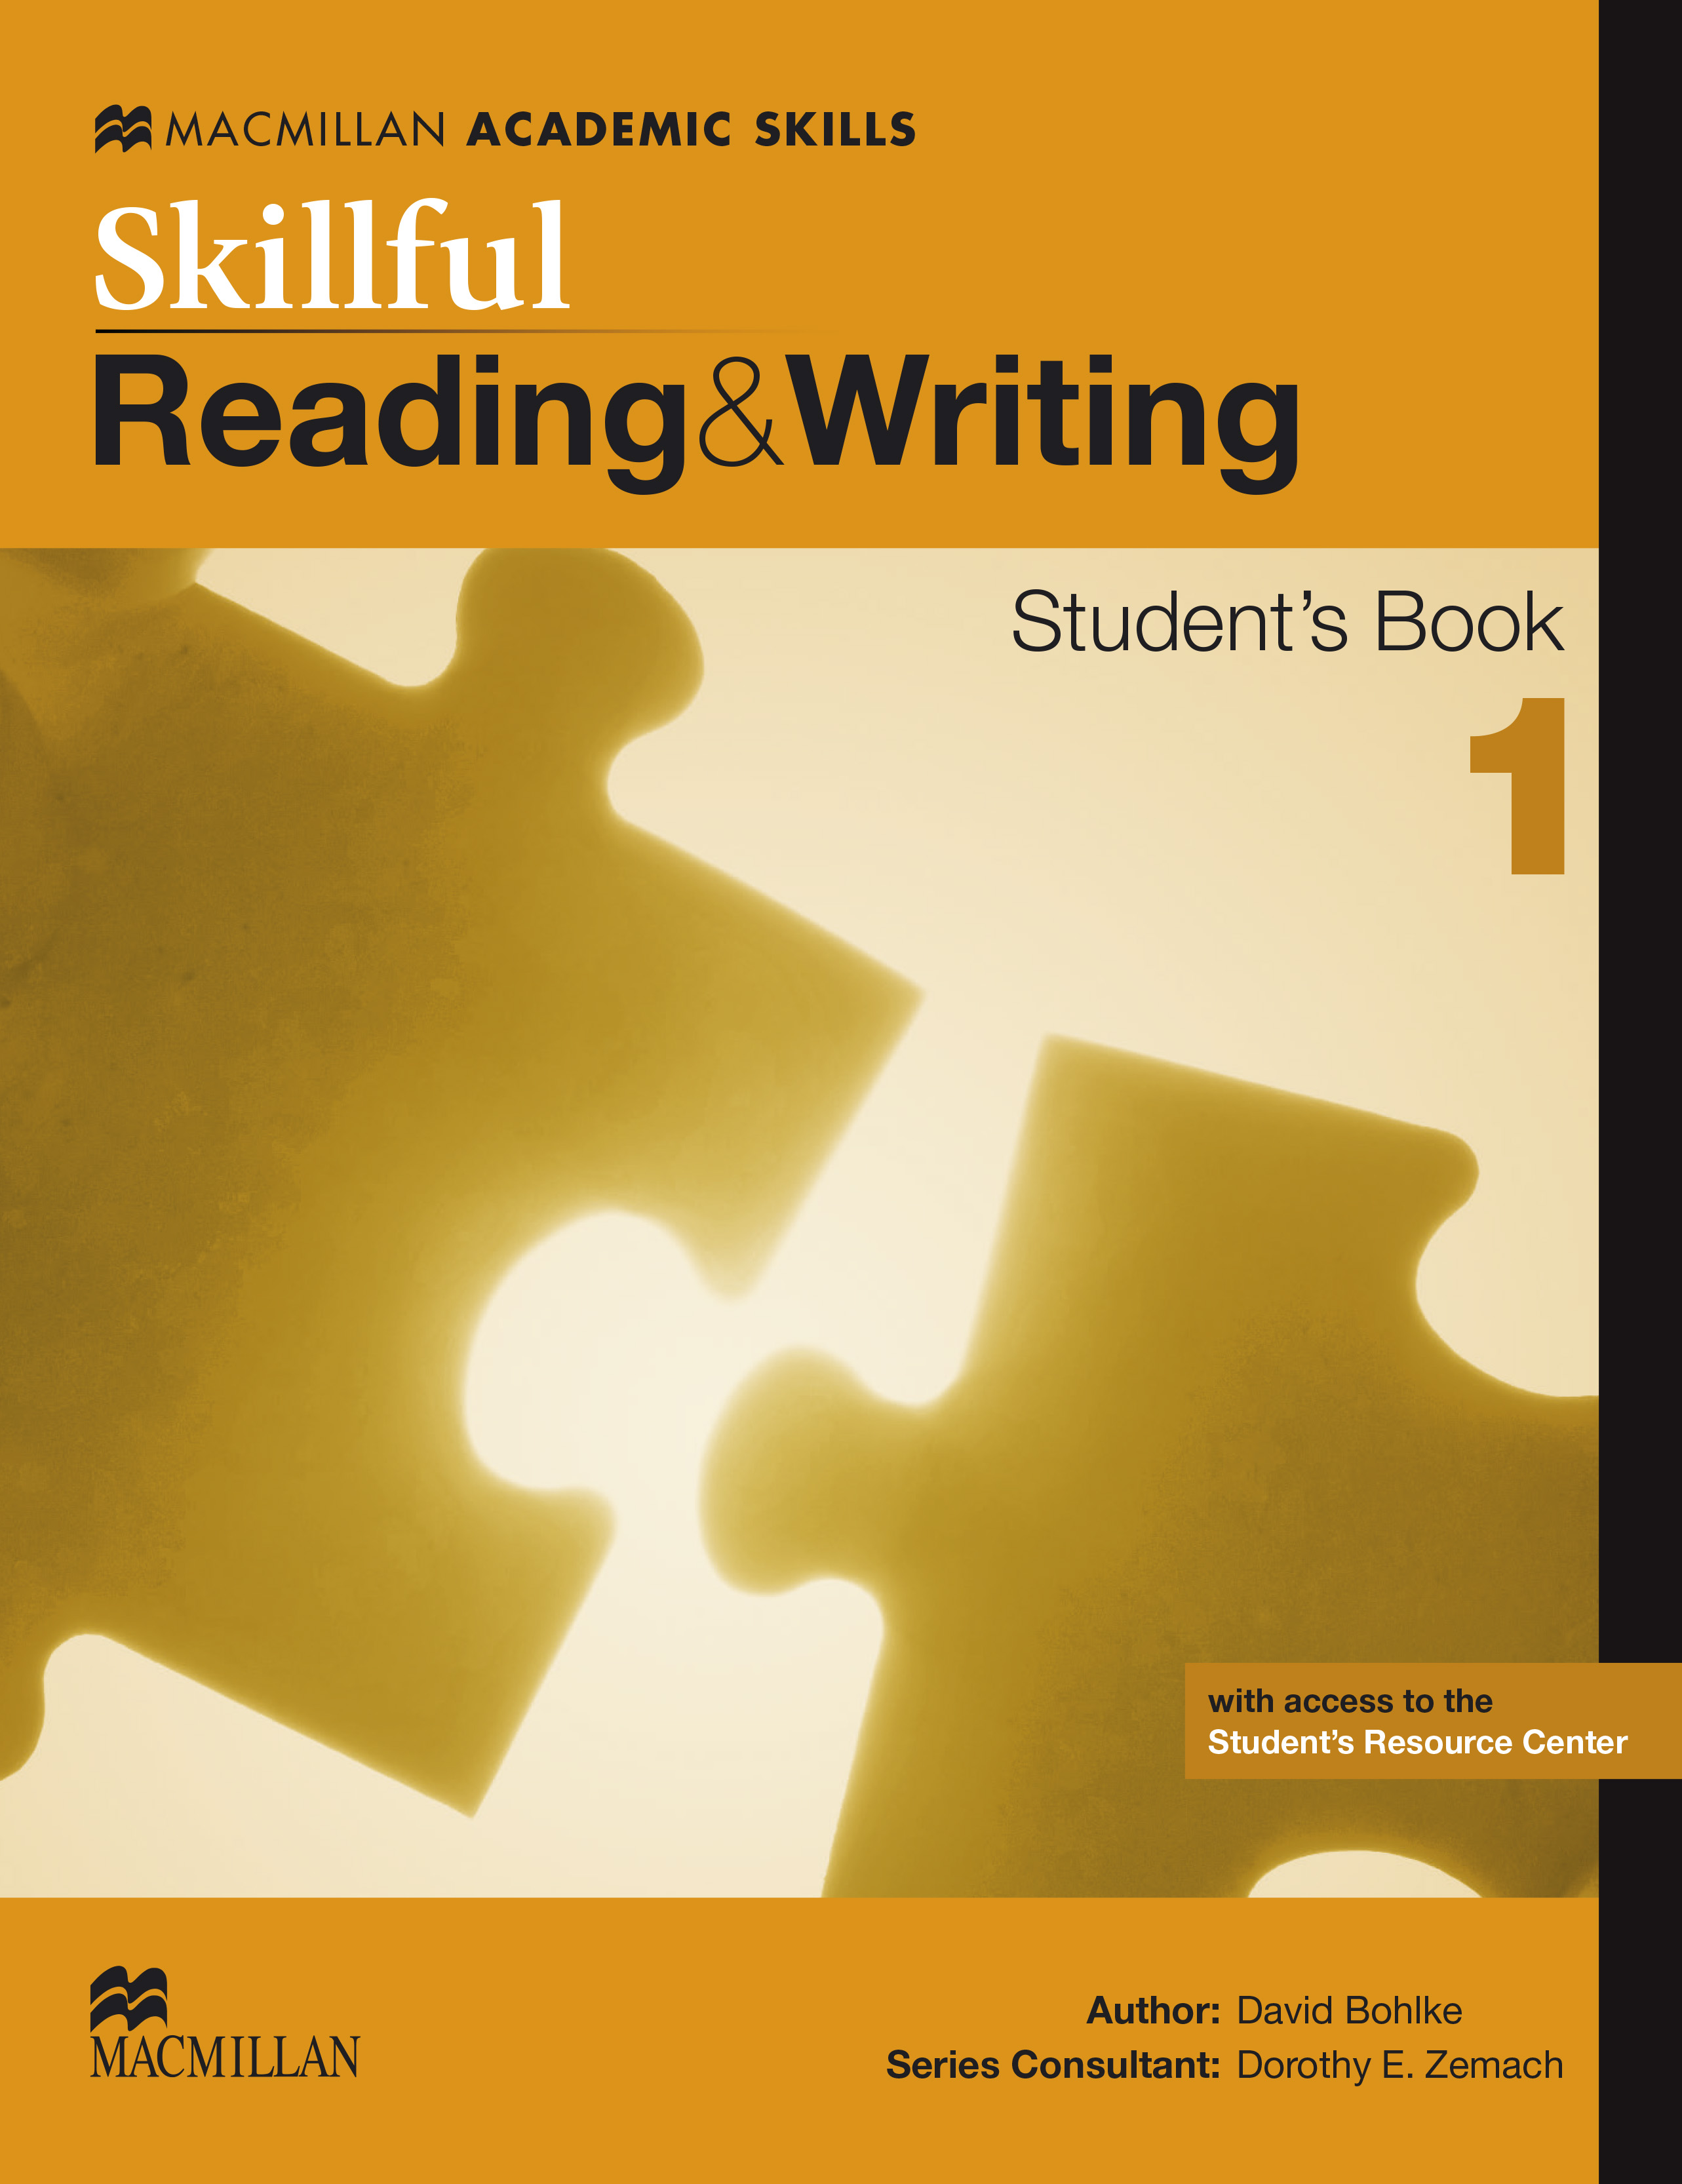 Skillful Level 1 Reading & Writing Student